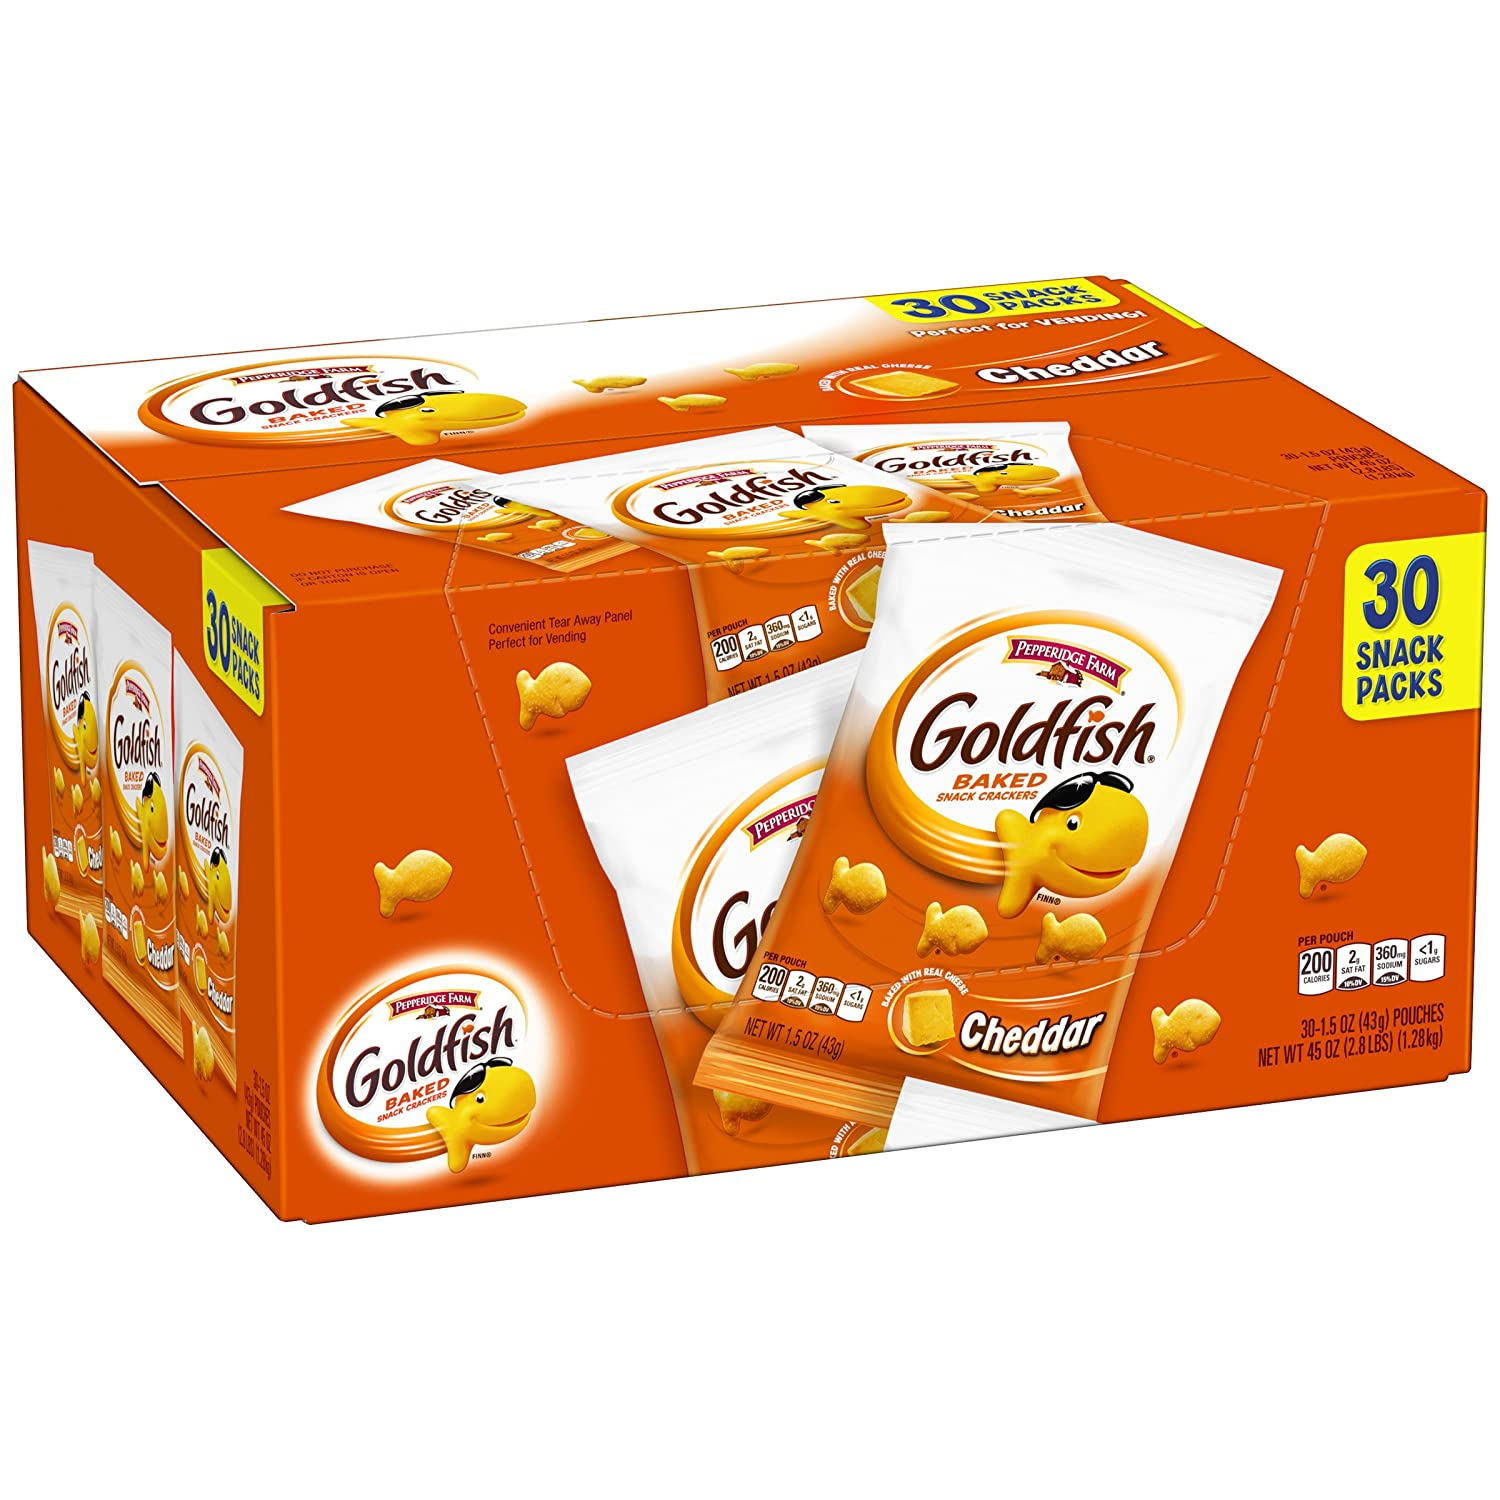 Pepperidge Farm Goldfish Cheddar Crackers, 1.5 Ounce Snack Packs, 30 Count